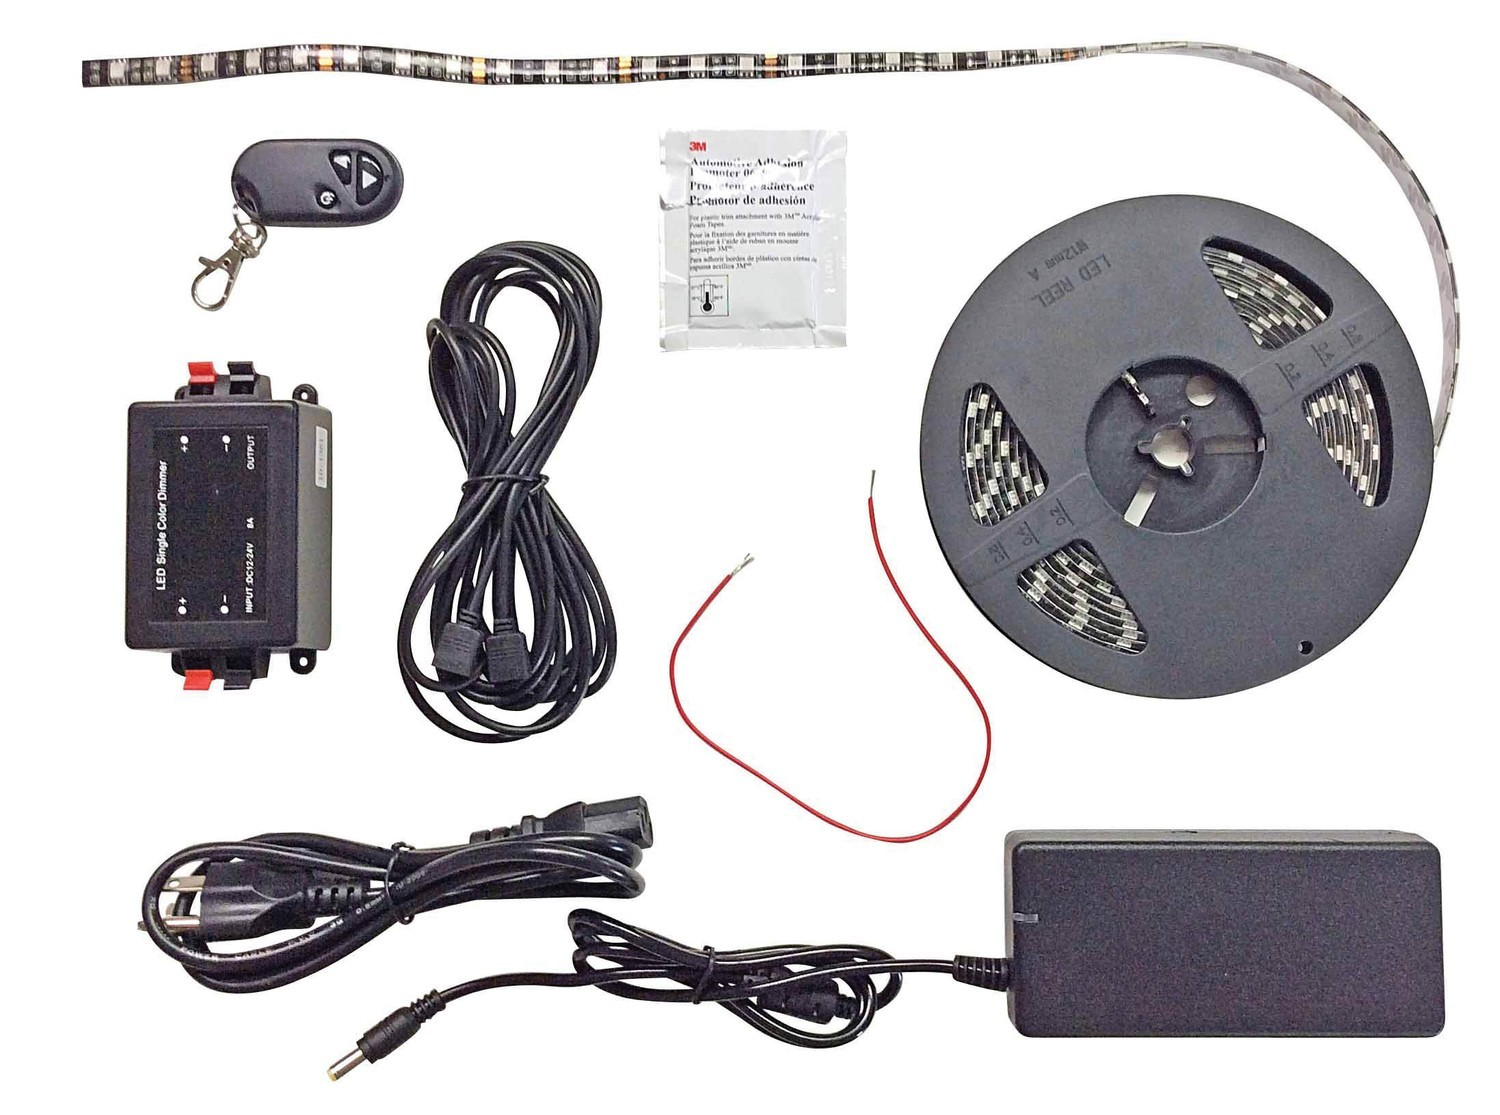 Black-Backed 16' LED Strip Light Kit - Blue Light Only